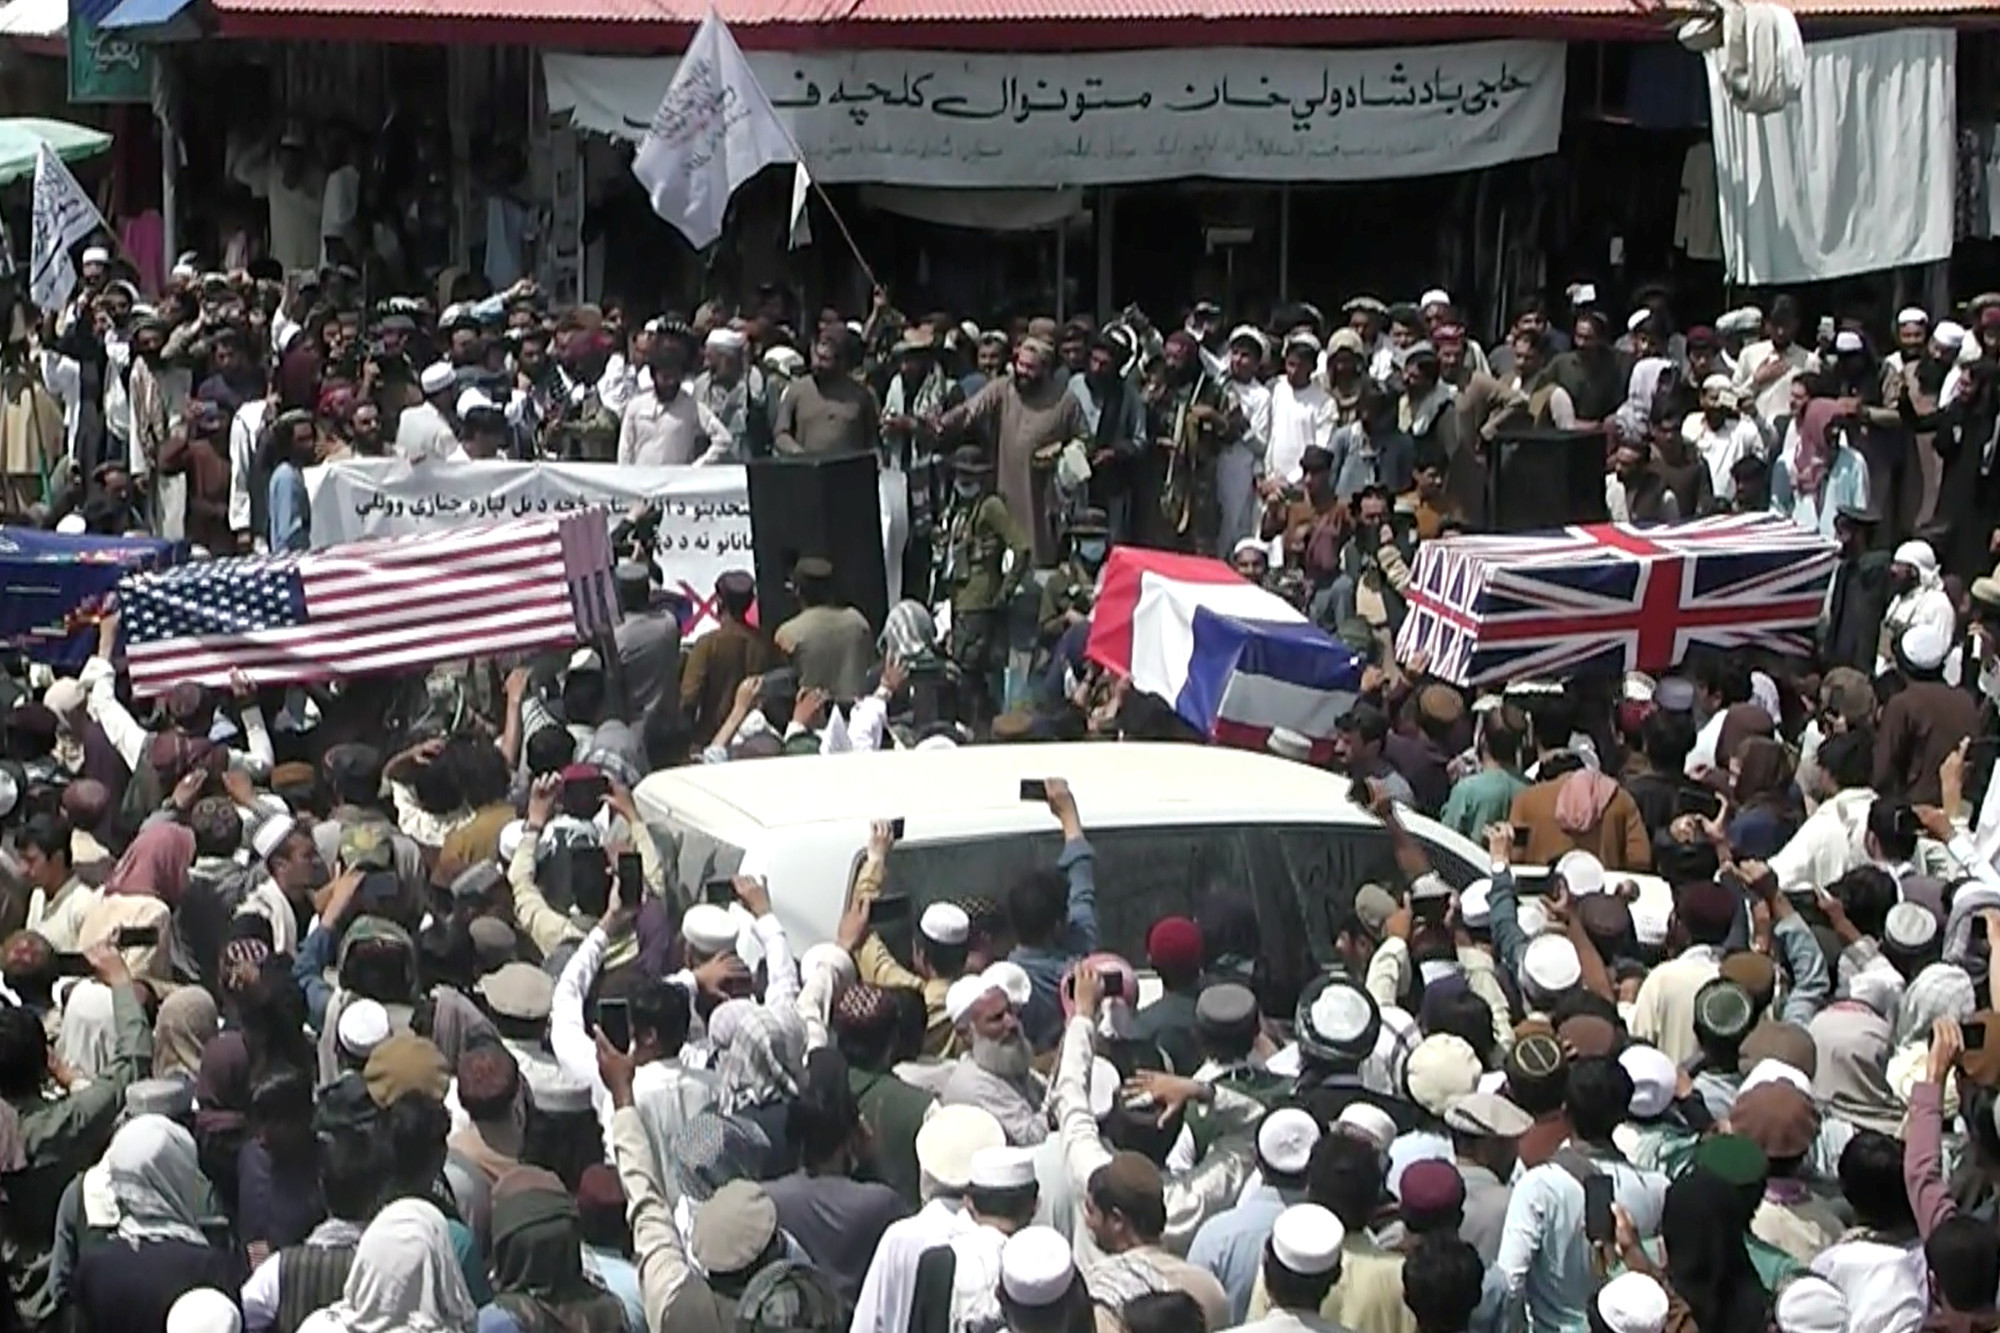 Taliban supporters carry makeshift coffins with the US, Great Britain and French flags draped on them in Khost, Afghanistan on August 31, 2021.